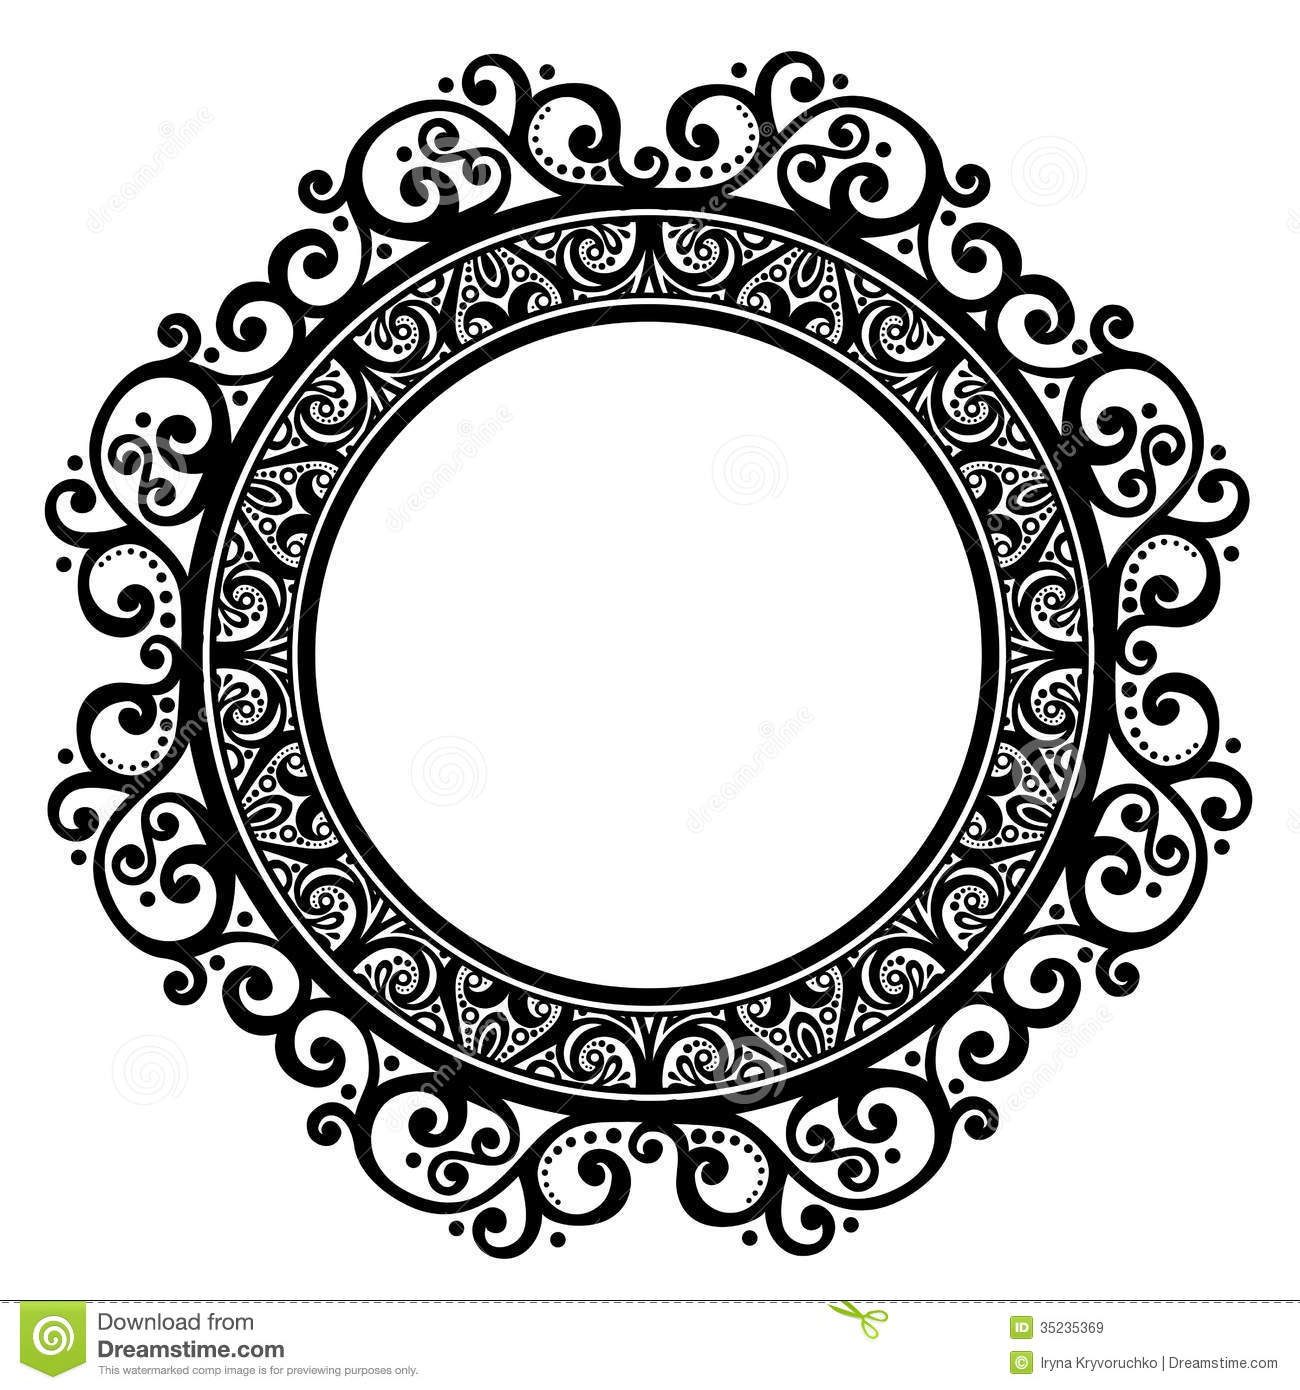 Decorative Round Frame stock vector. Illustration of frost - 35235369